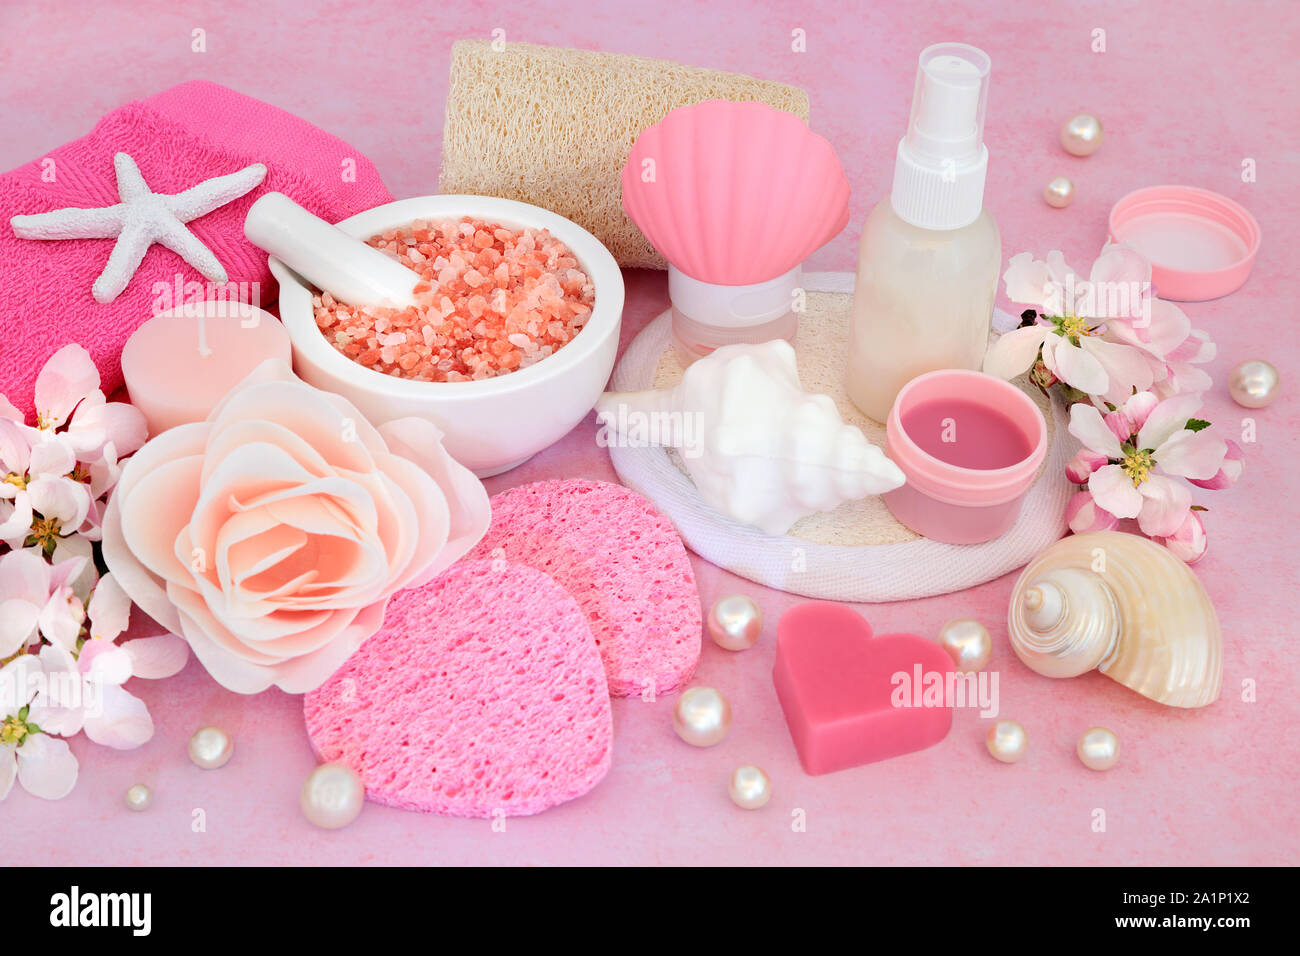 Skincare Beauty Treatment With Spa Exfoliation And Cleansing Products With Apple Blossom Flowers On Pink Background Stock Photo Alamy